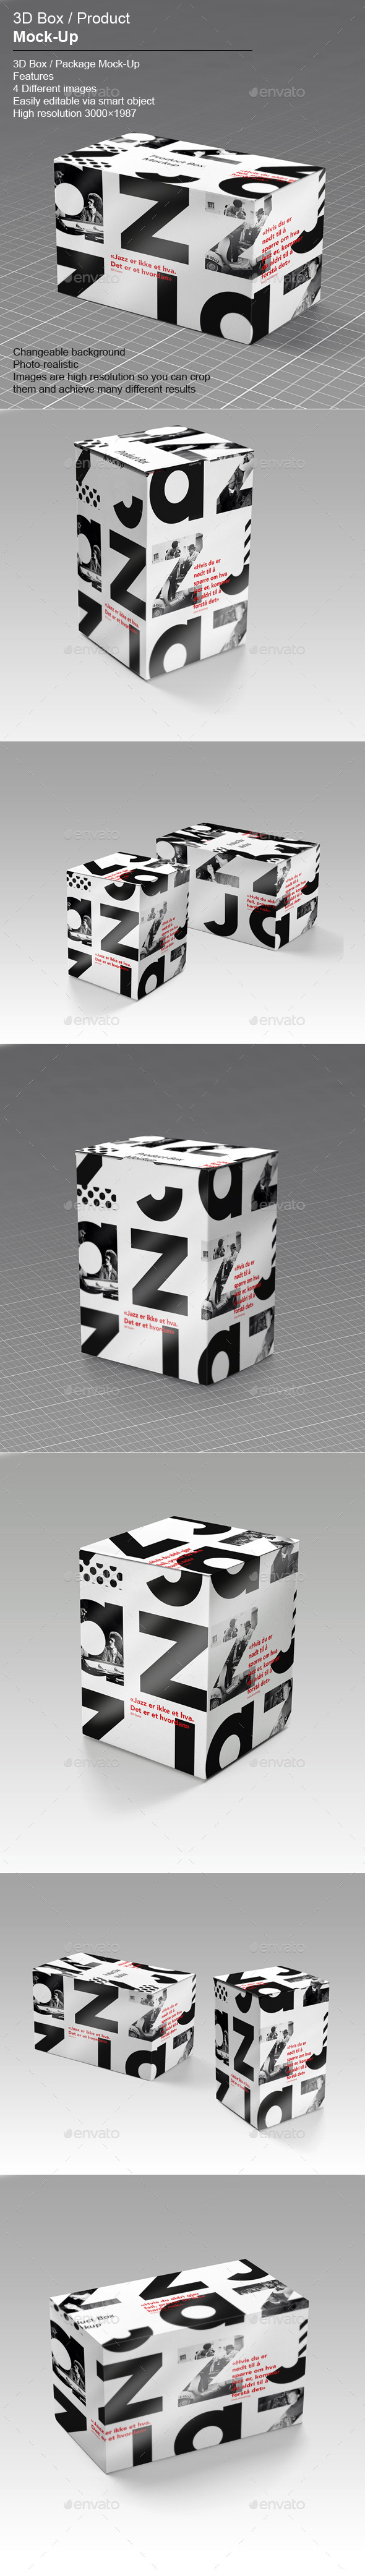 GraphicRiver 3D Box Product Mock-Up v.1 10932073